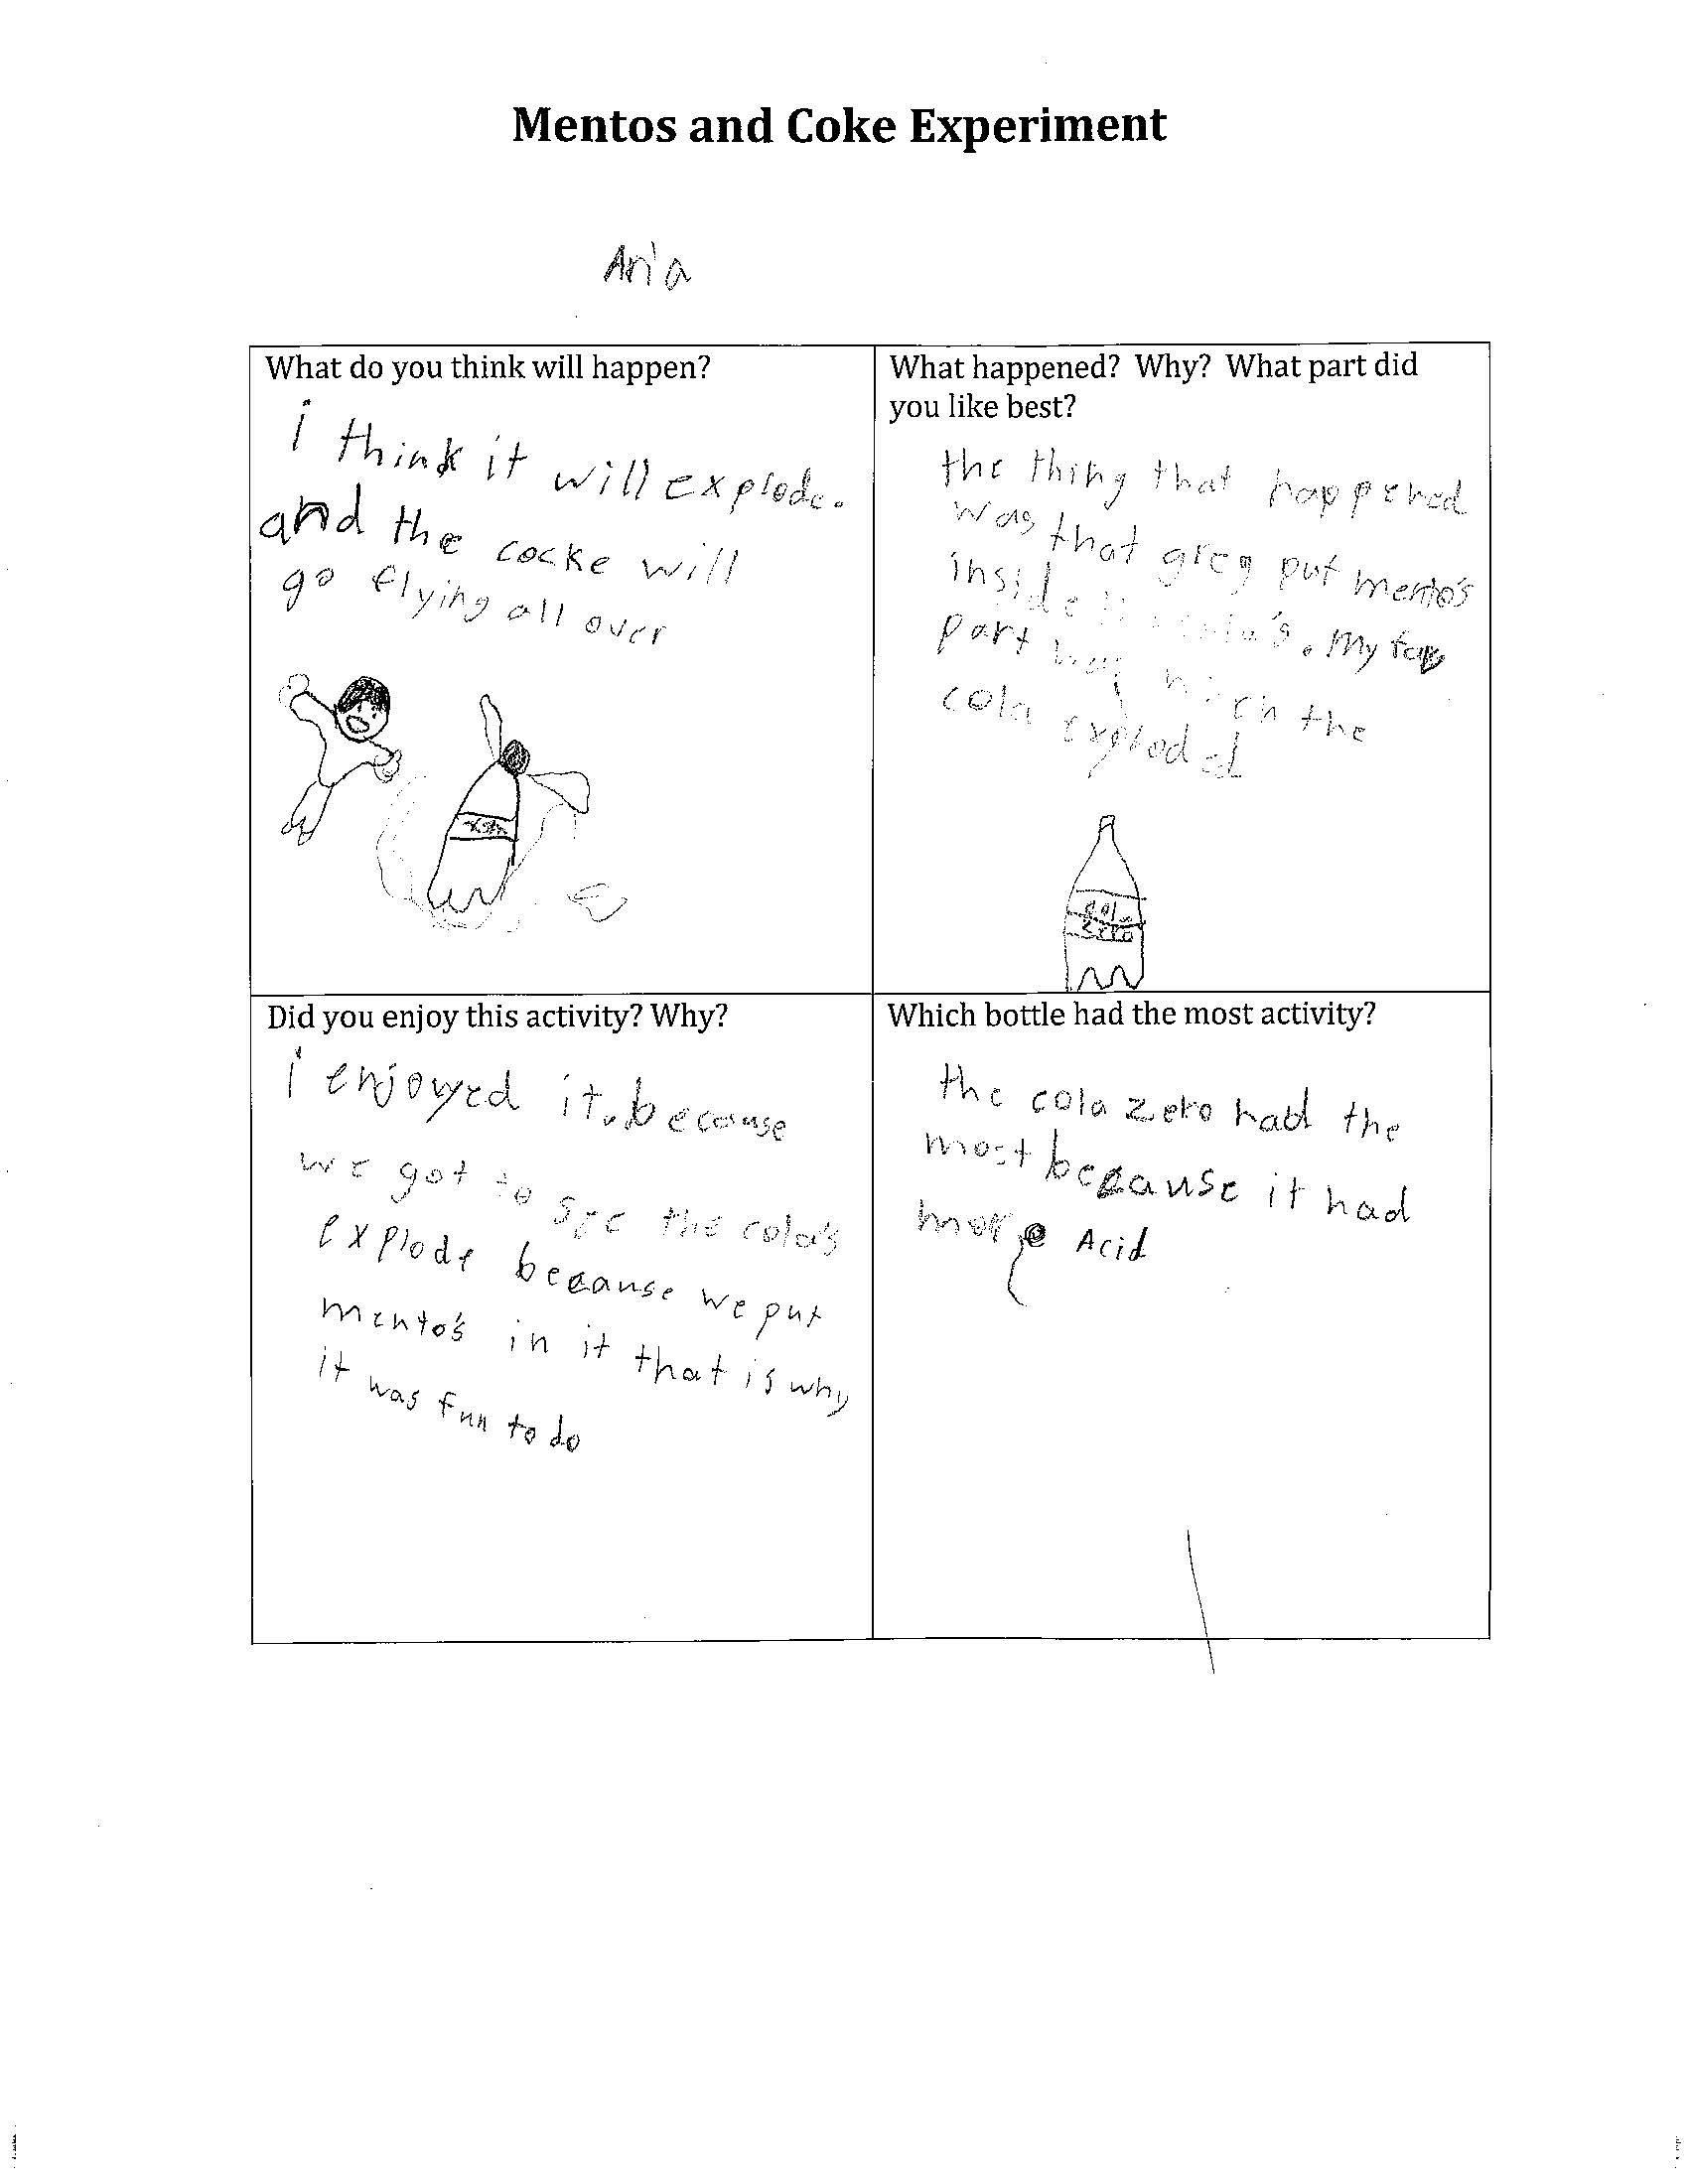 worksheet Mentos Experiment Worksheet moorelands role models in training childrens blast mentos and coke experiment worksheet worksheet